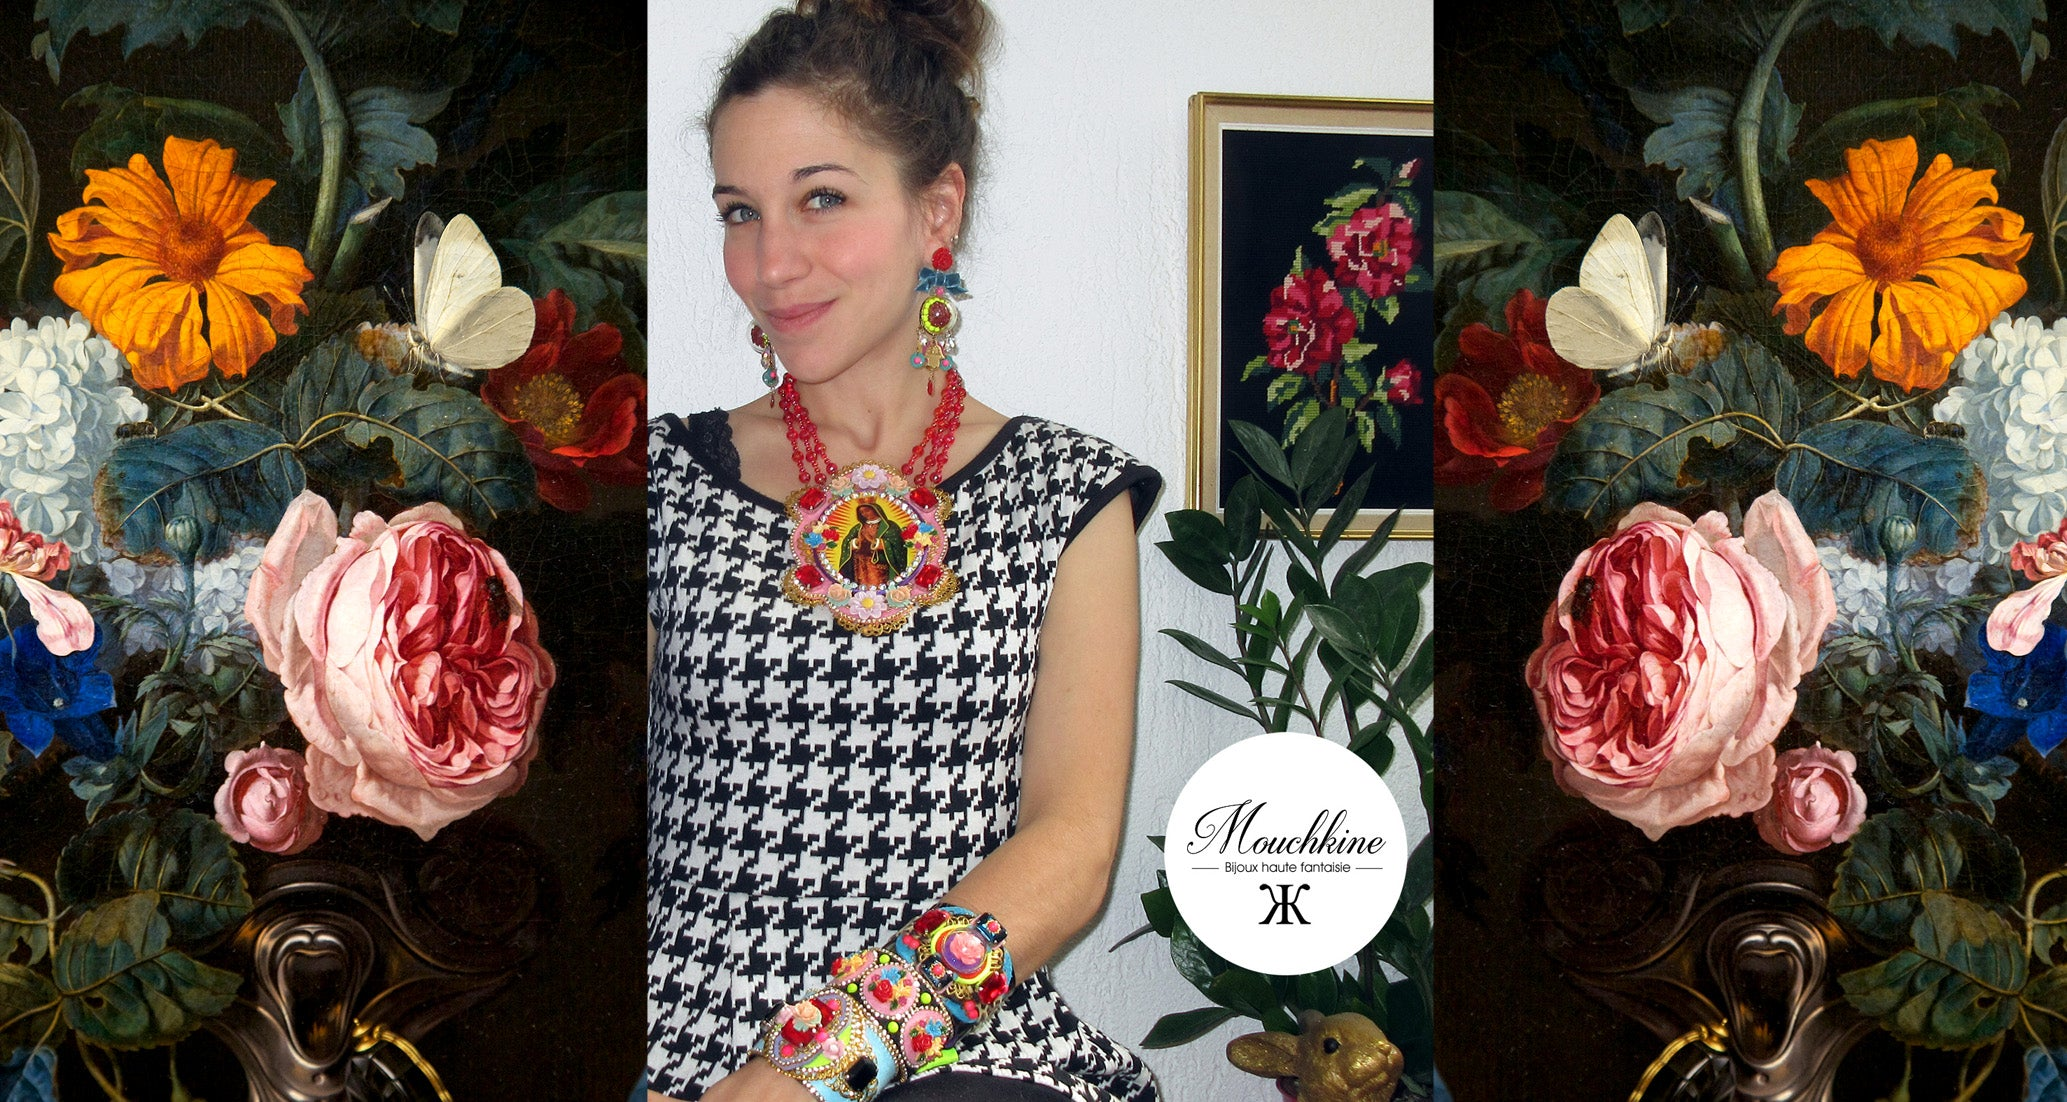 mouchkine jewelry fashion designer anne-christine Nadal, handmade and made in france jewels